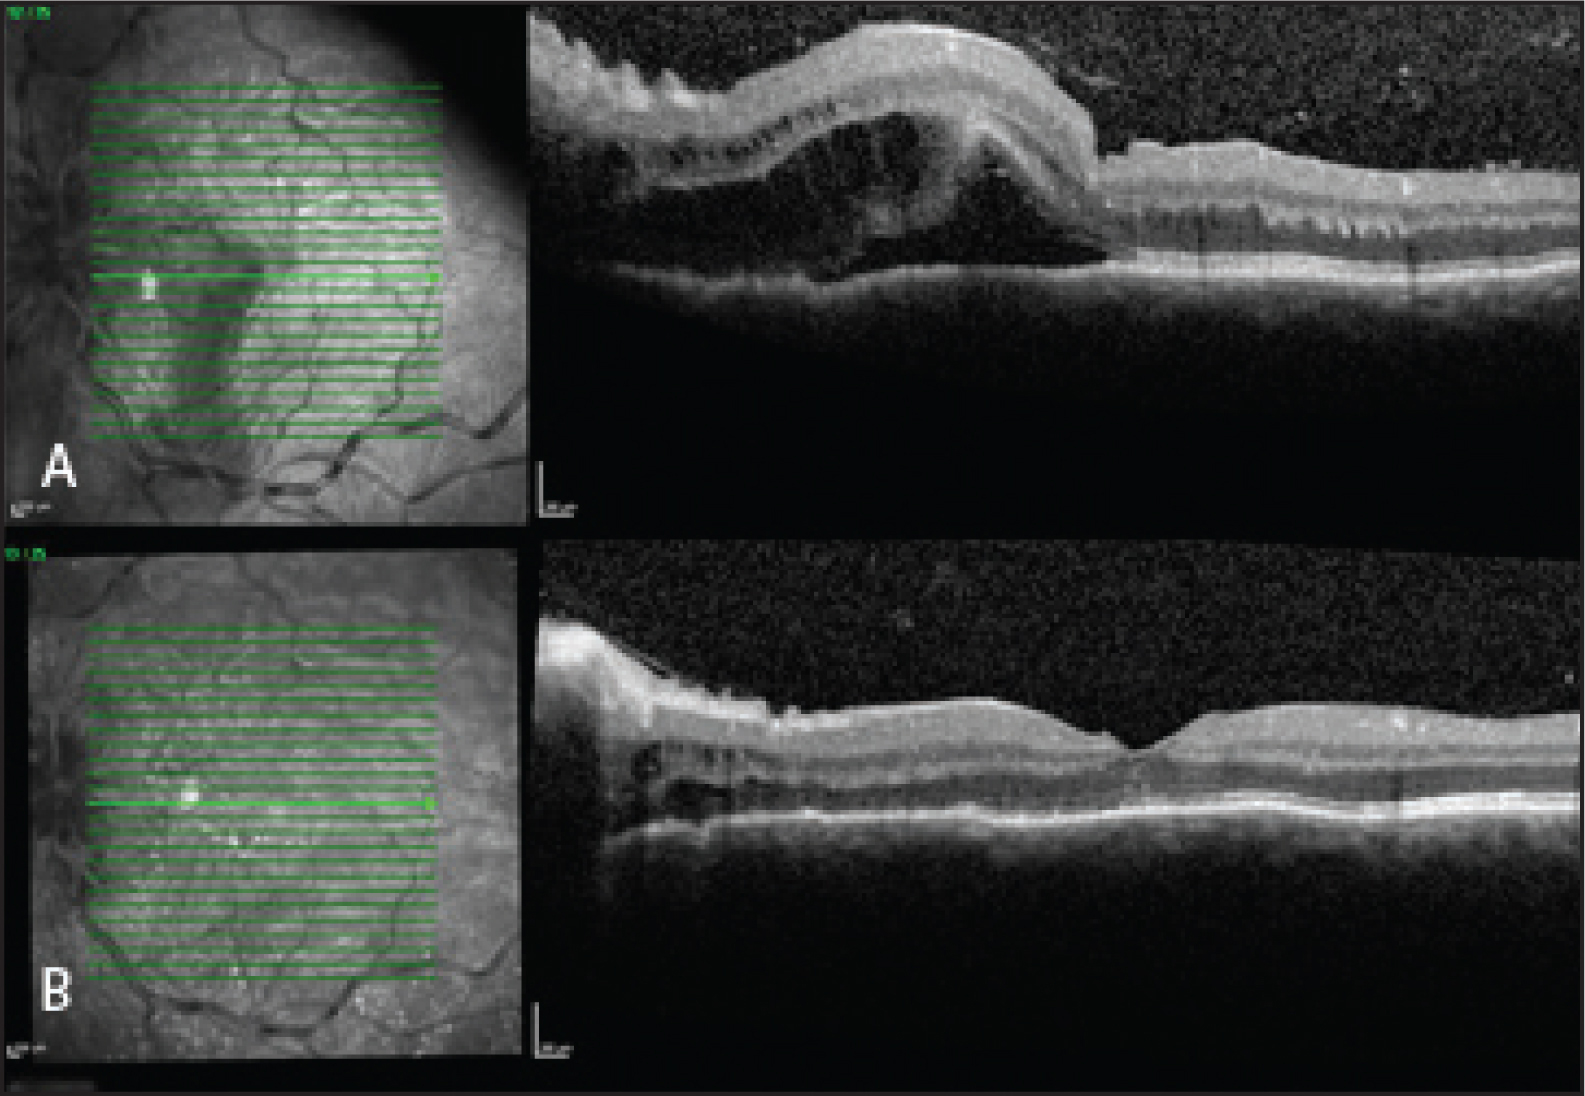 (A) Preoperative macular OCT demonstrating intraretinal and subretinal fluid extending from the optic nerve with foveal detachment. (B) Postoperative OCT with resolution of fluid and improvement in foveal contour.